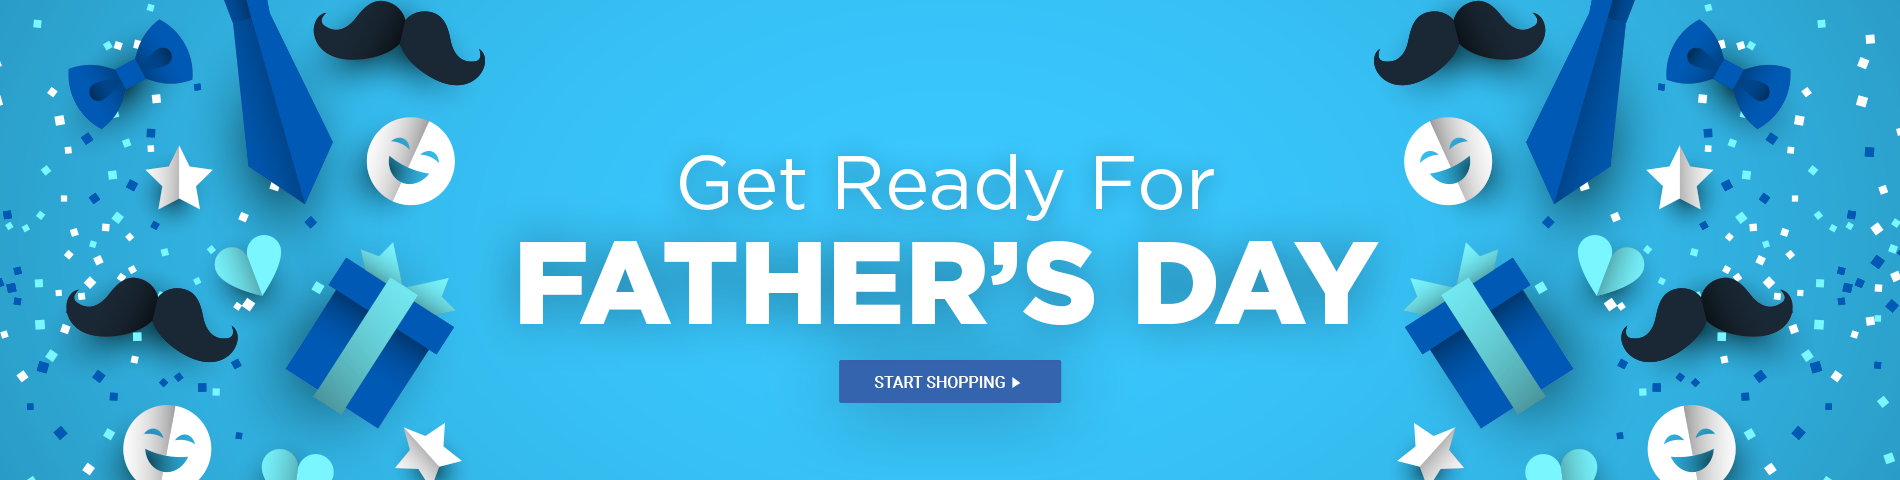 Get Ready for Father's Day